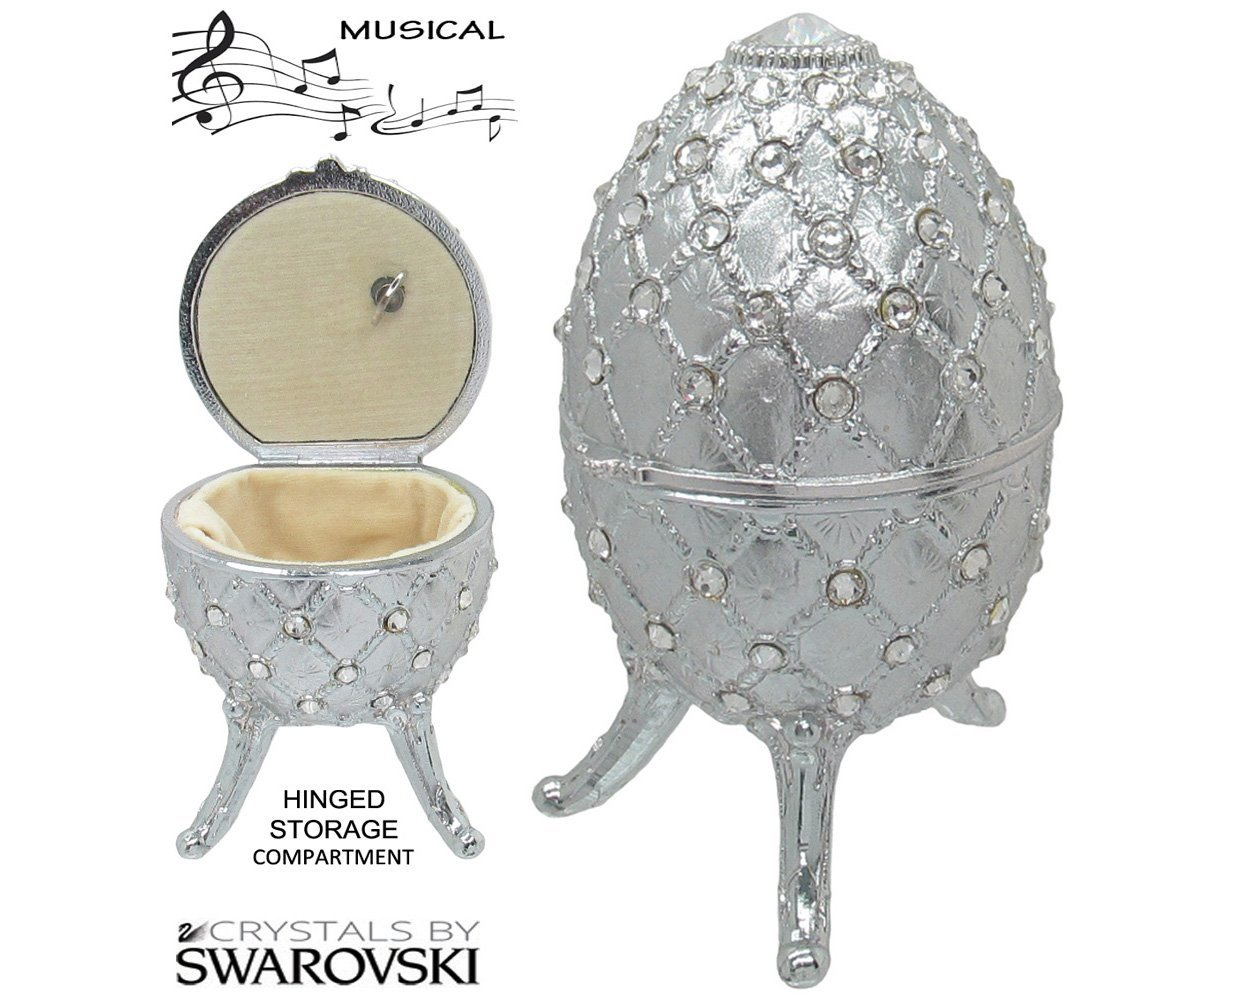 Primary image for Musical Jewelry and Trinket Box with Swarovski Crystals, Platinum